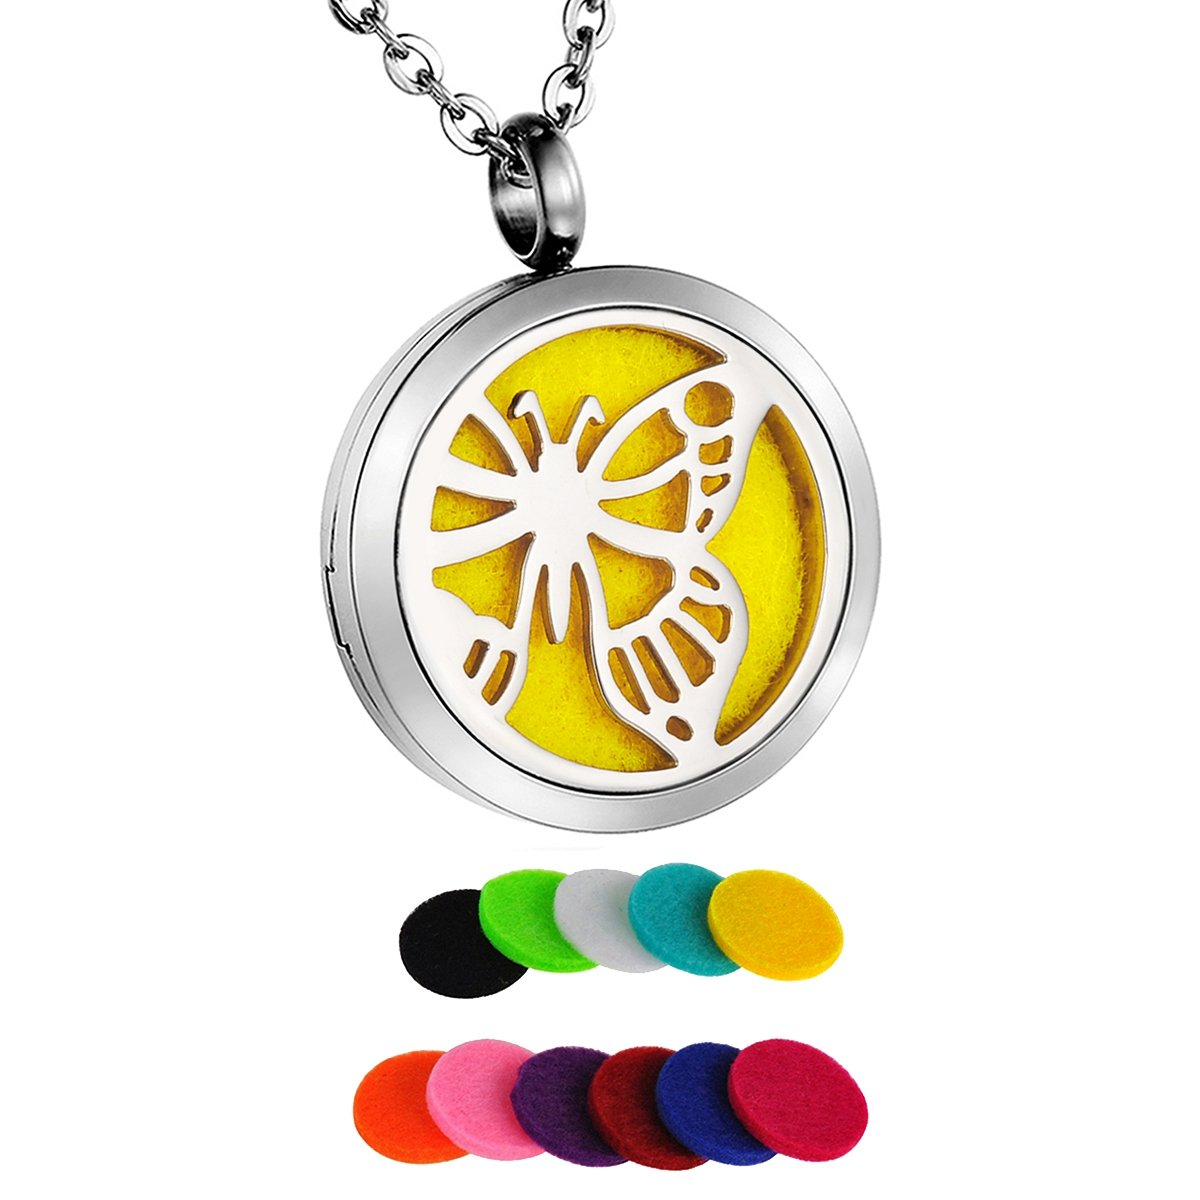 HooAMI Butterfly Round Aromatherapy Essential Oil Diffuser Necklace Pendant Locket Jewelry Gift Set TY BETY104860